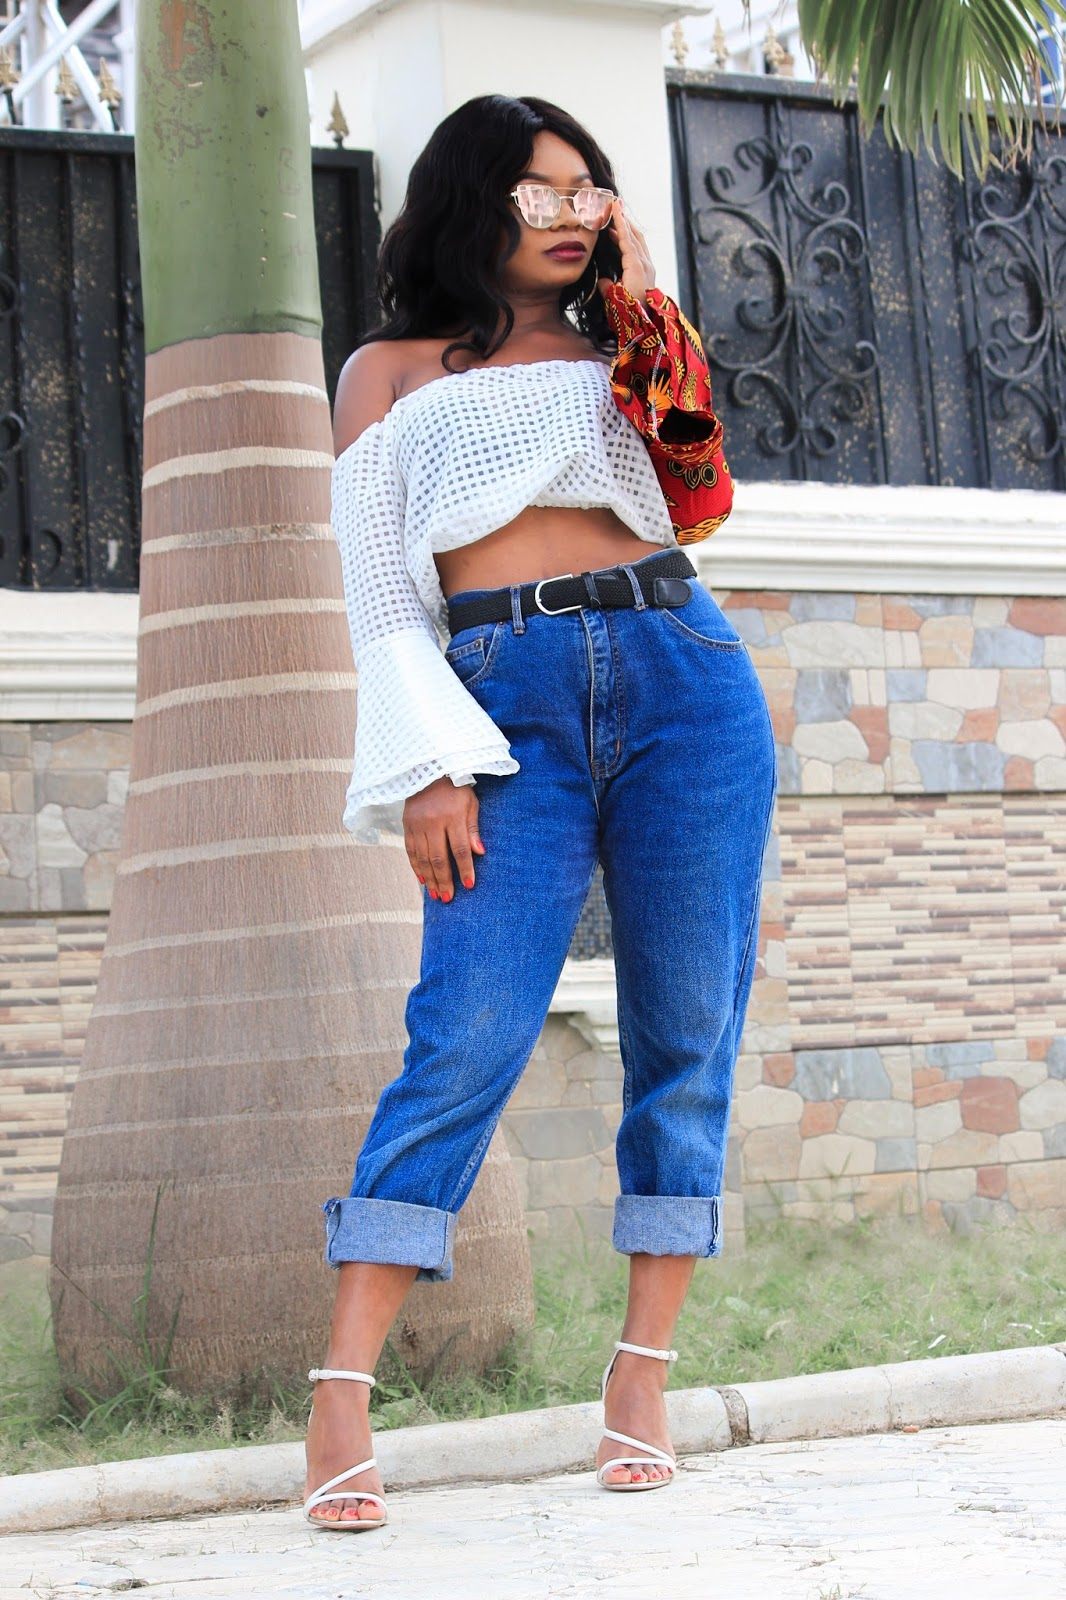 ANKARA CROP TOP - Ankara Crop Top from House of Nessa with Vintage Mom Jeans